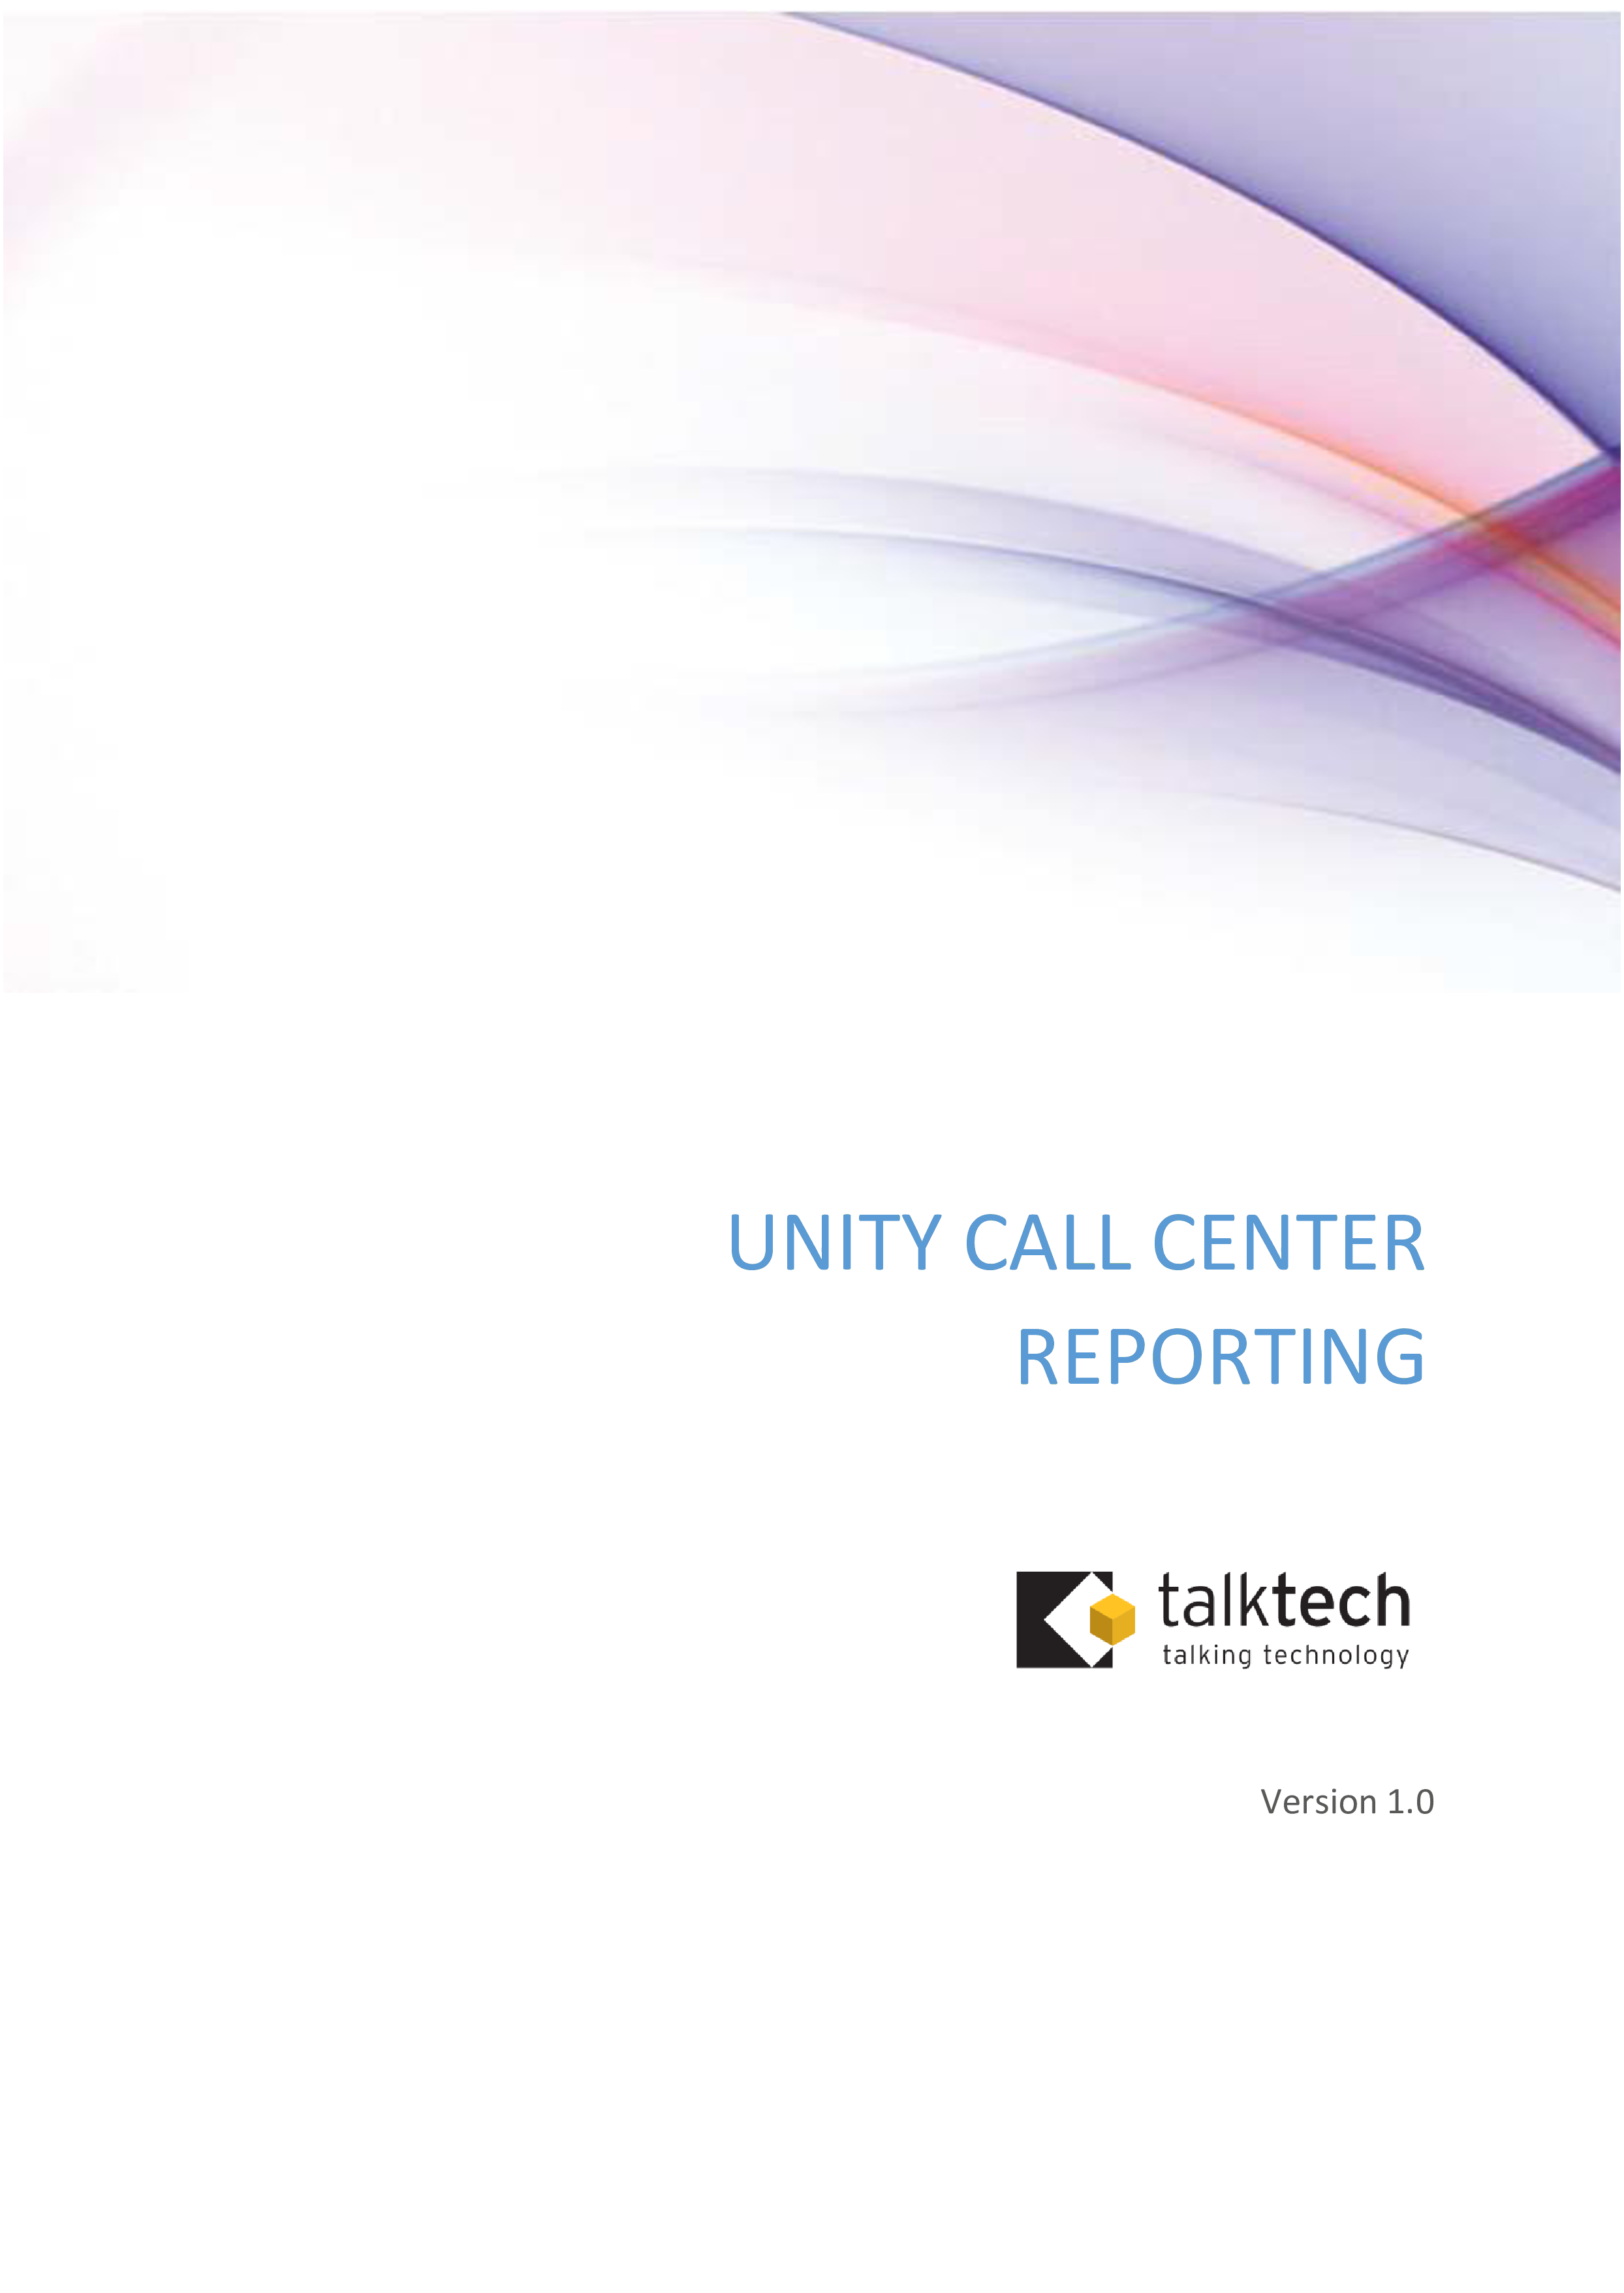 Daily Call Activity Report Main Image Download Template